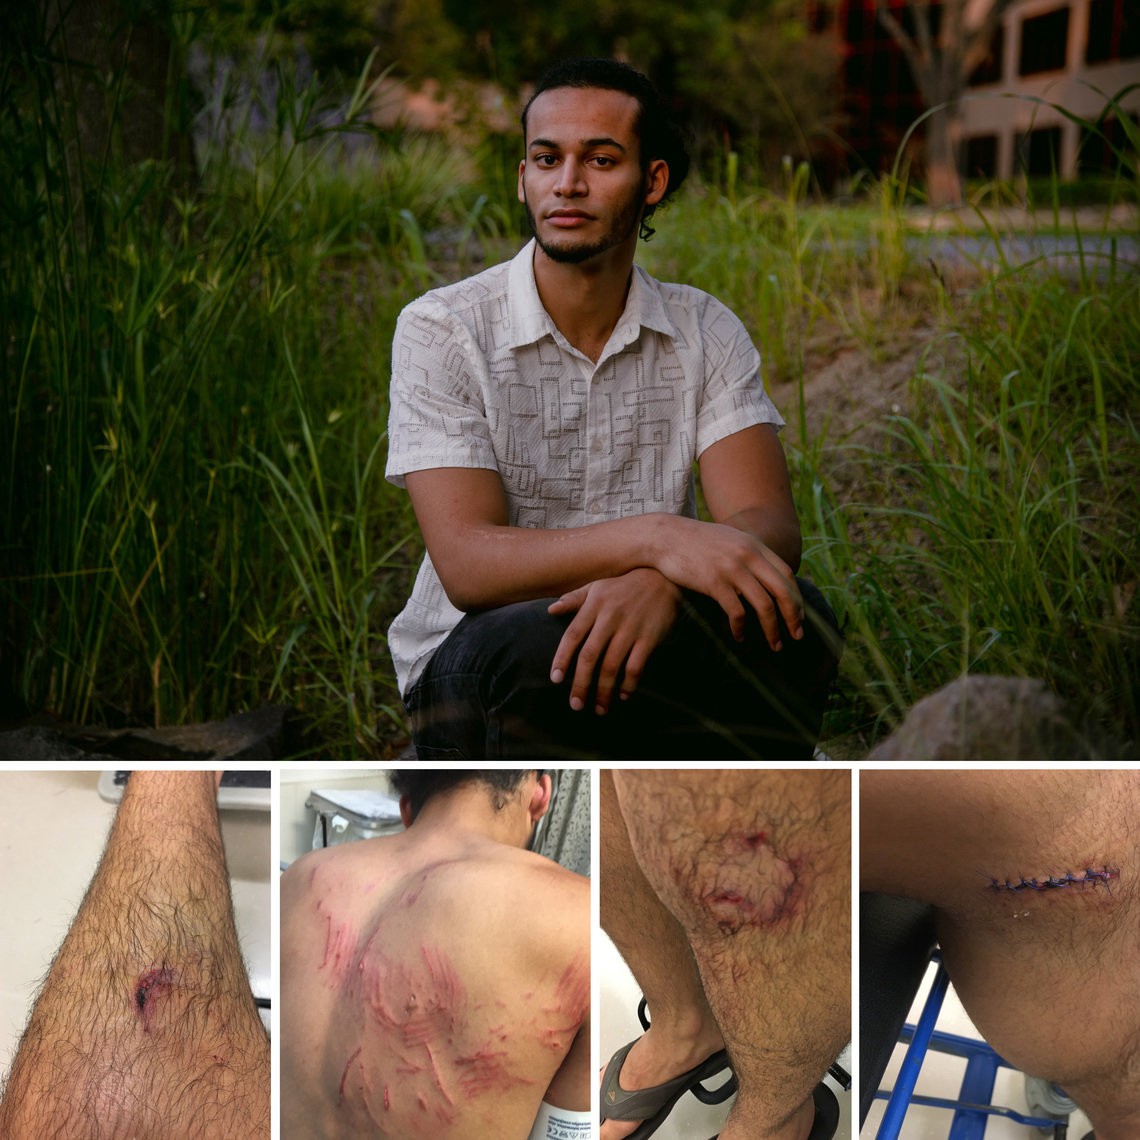 Joseph Malott, a 22-year-old architecture student, was attacked and bitten by a police dog in Walnut Creek, California, during a Black Lives Matter demonstration on June 1. Photos of his back and legs a few hours after the incident.